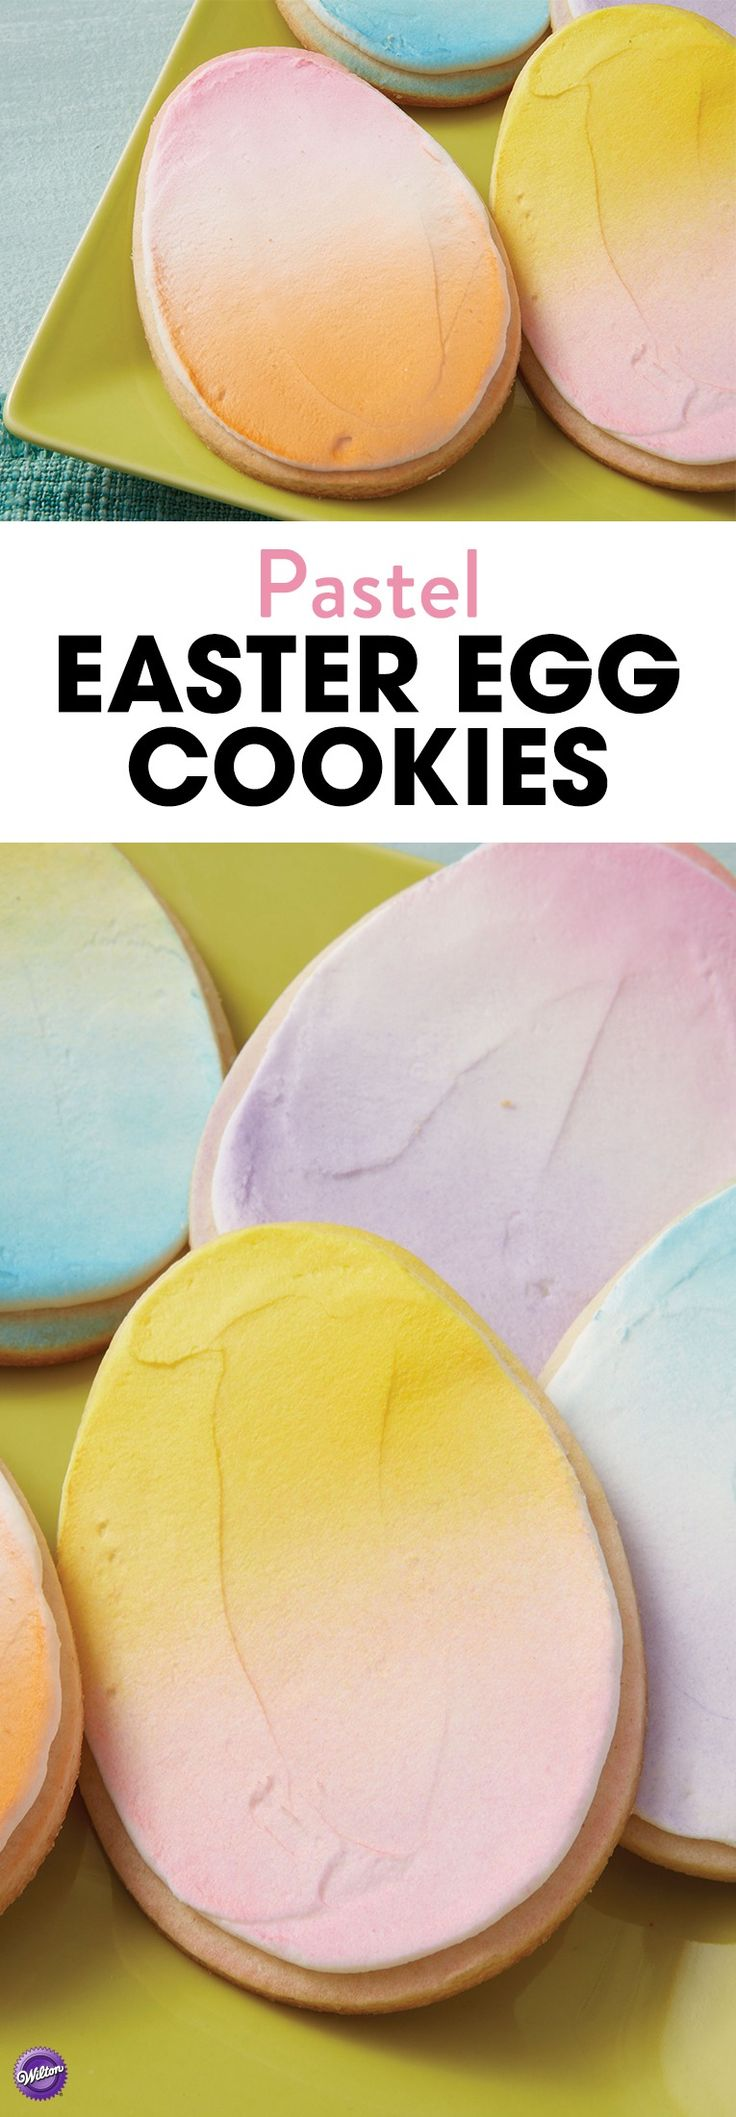 Coloring eggs is an Easter tradition, so why not color egg cookies too? Add the pretty pastel colors onto iced cookies using Wilton Color Mist Food Color Spray.